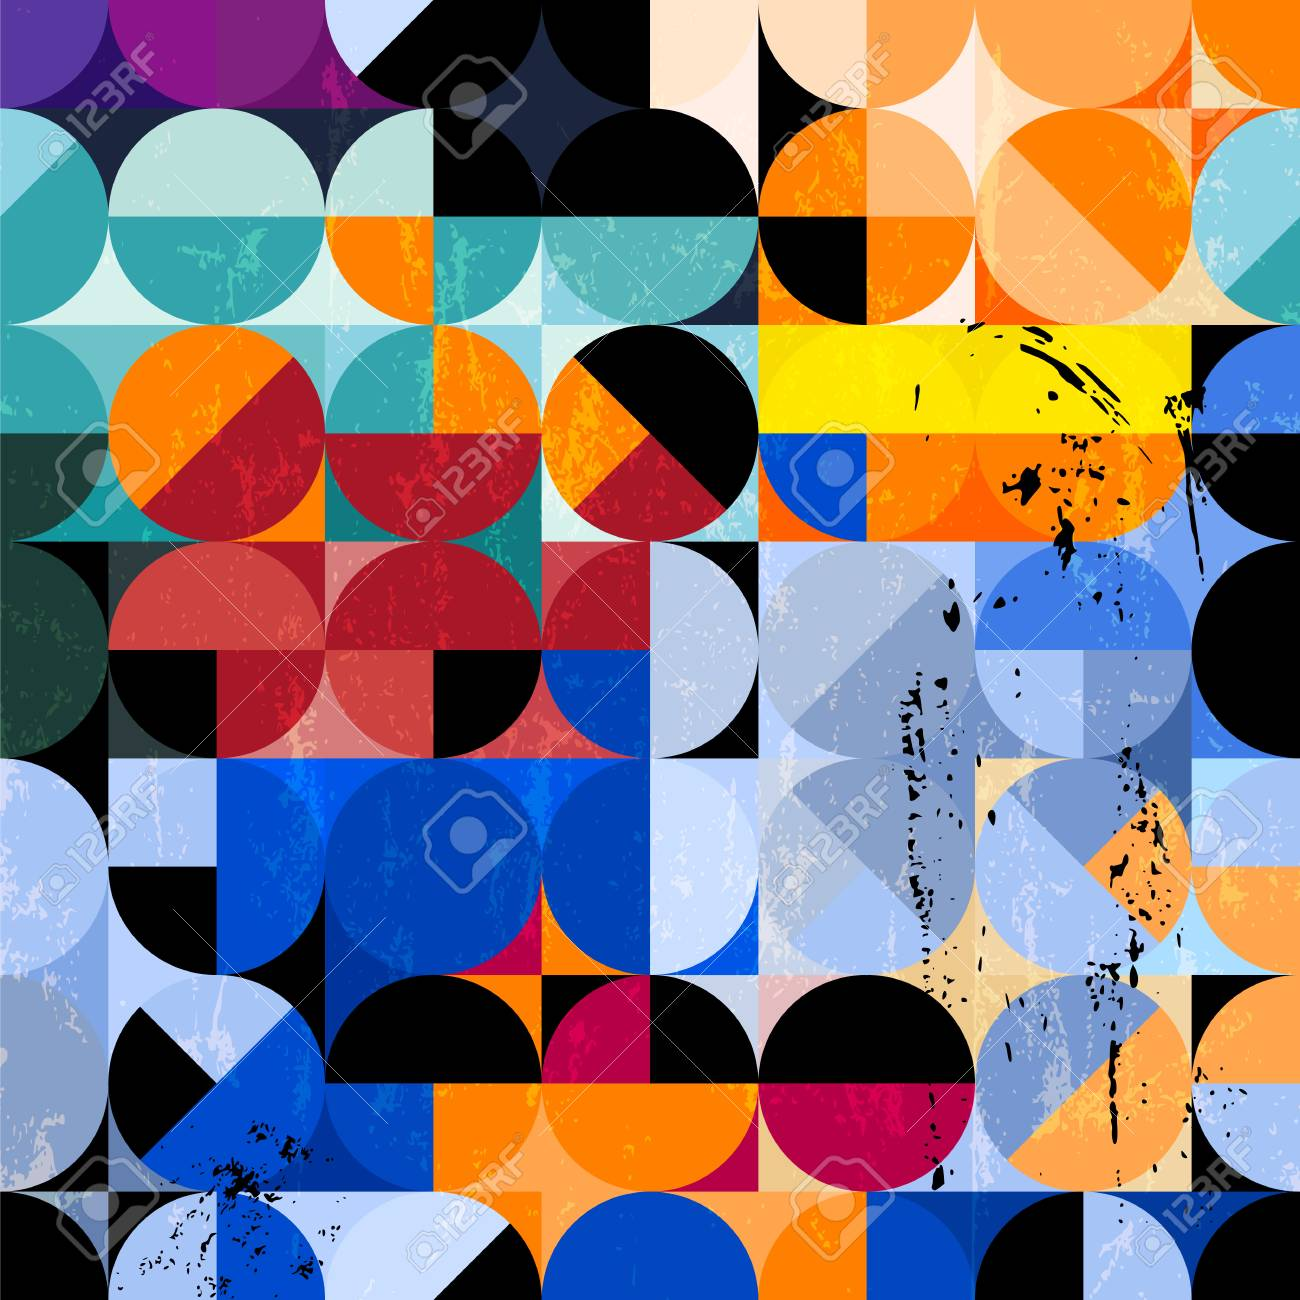 abstract geometric background pattern, retro/vintage style, with circles, strokes and splashes - 117016504